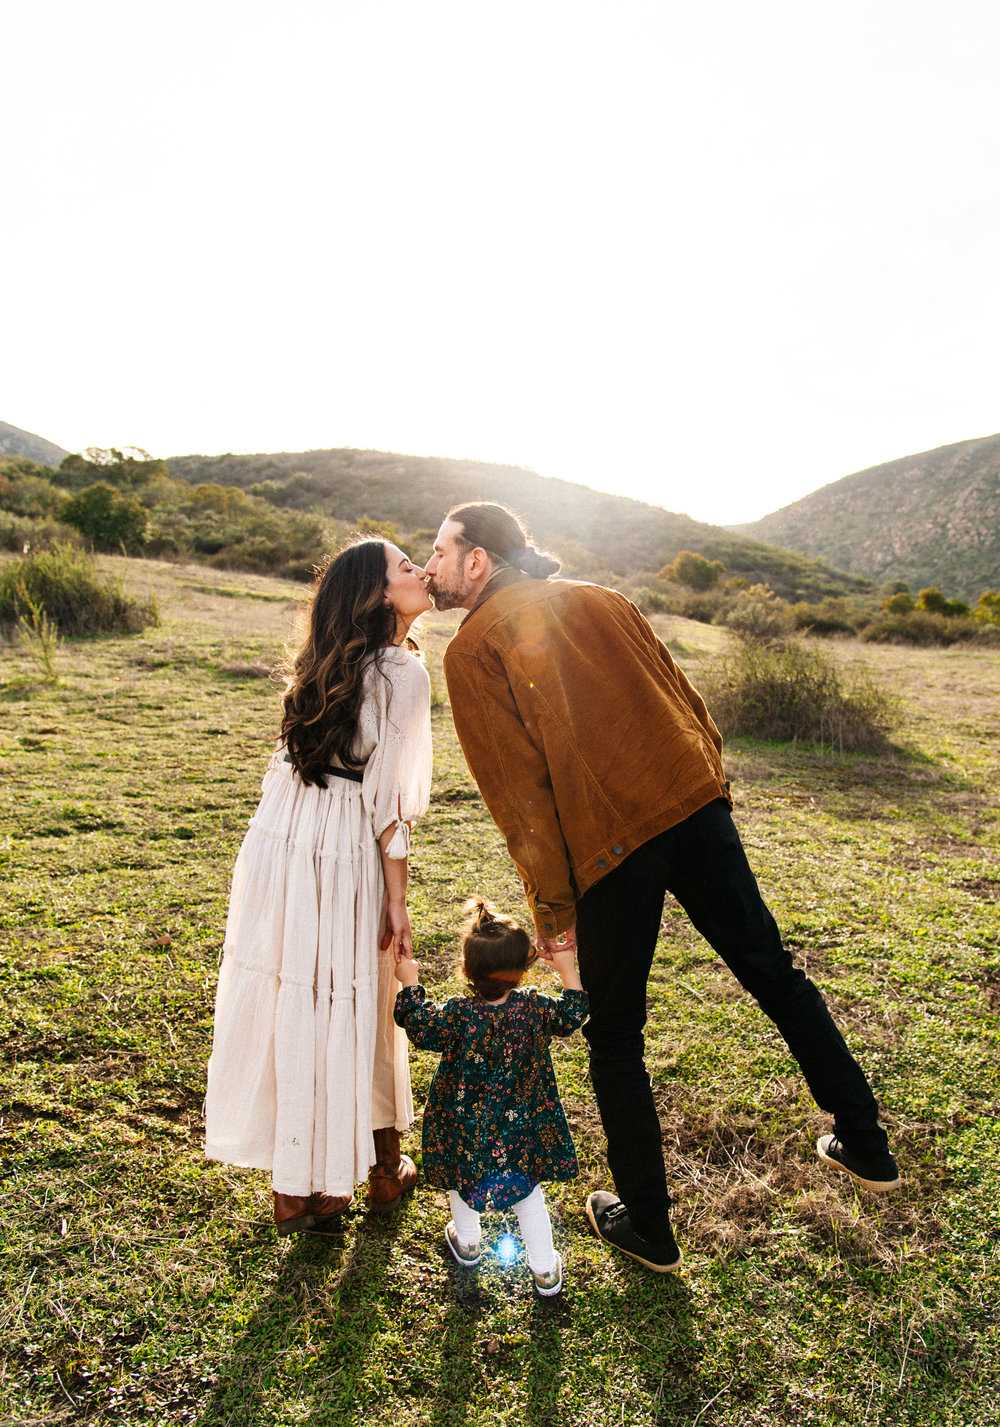 SamErica Studios - San Diego Family Photographer - Family Session at Mission Trails-13.jpg